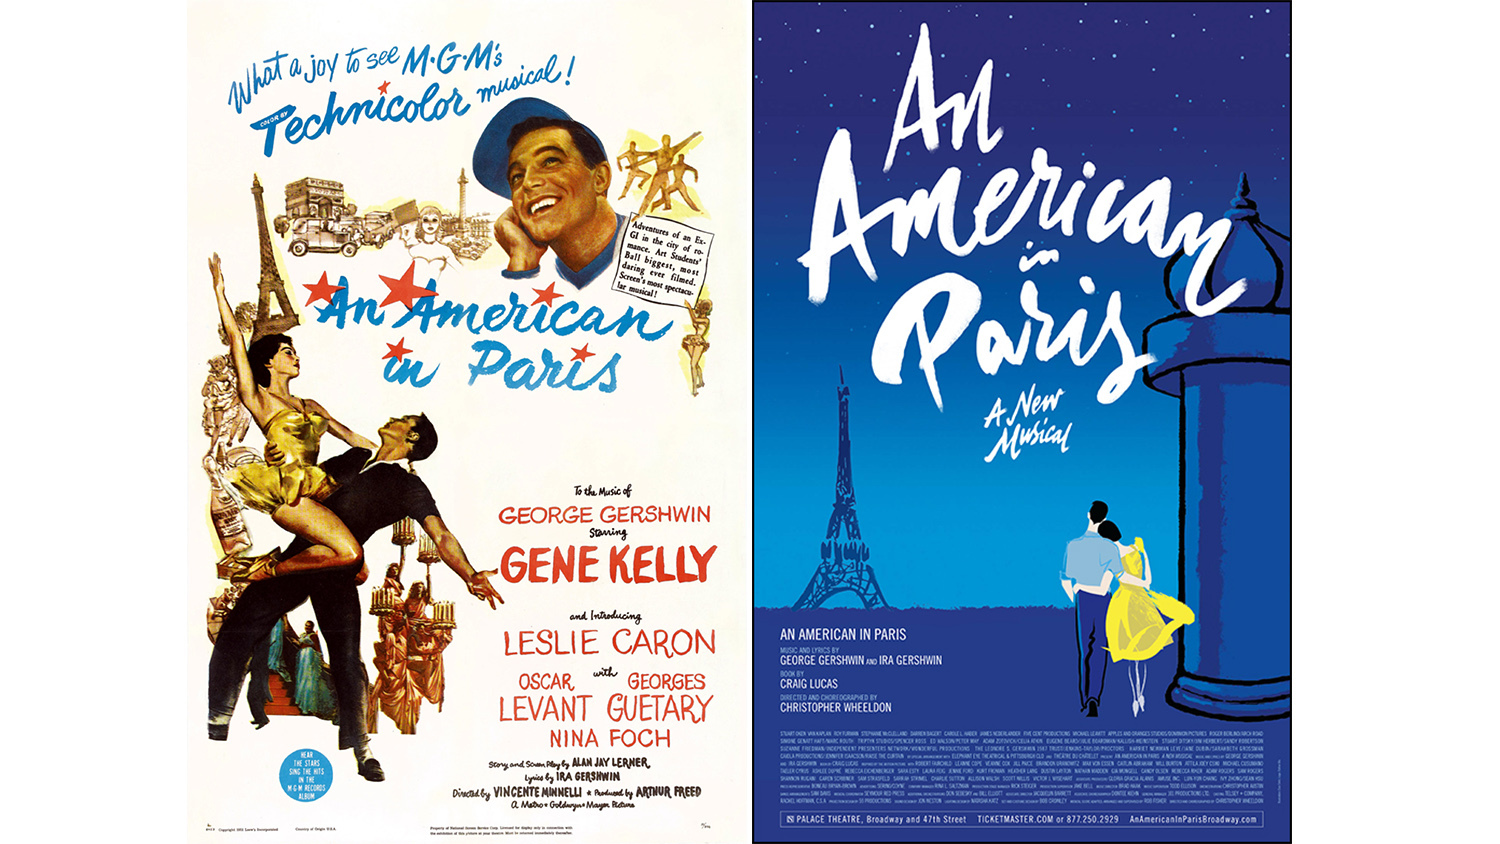 An American in Paris (2015)